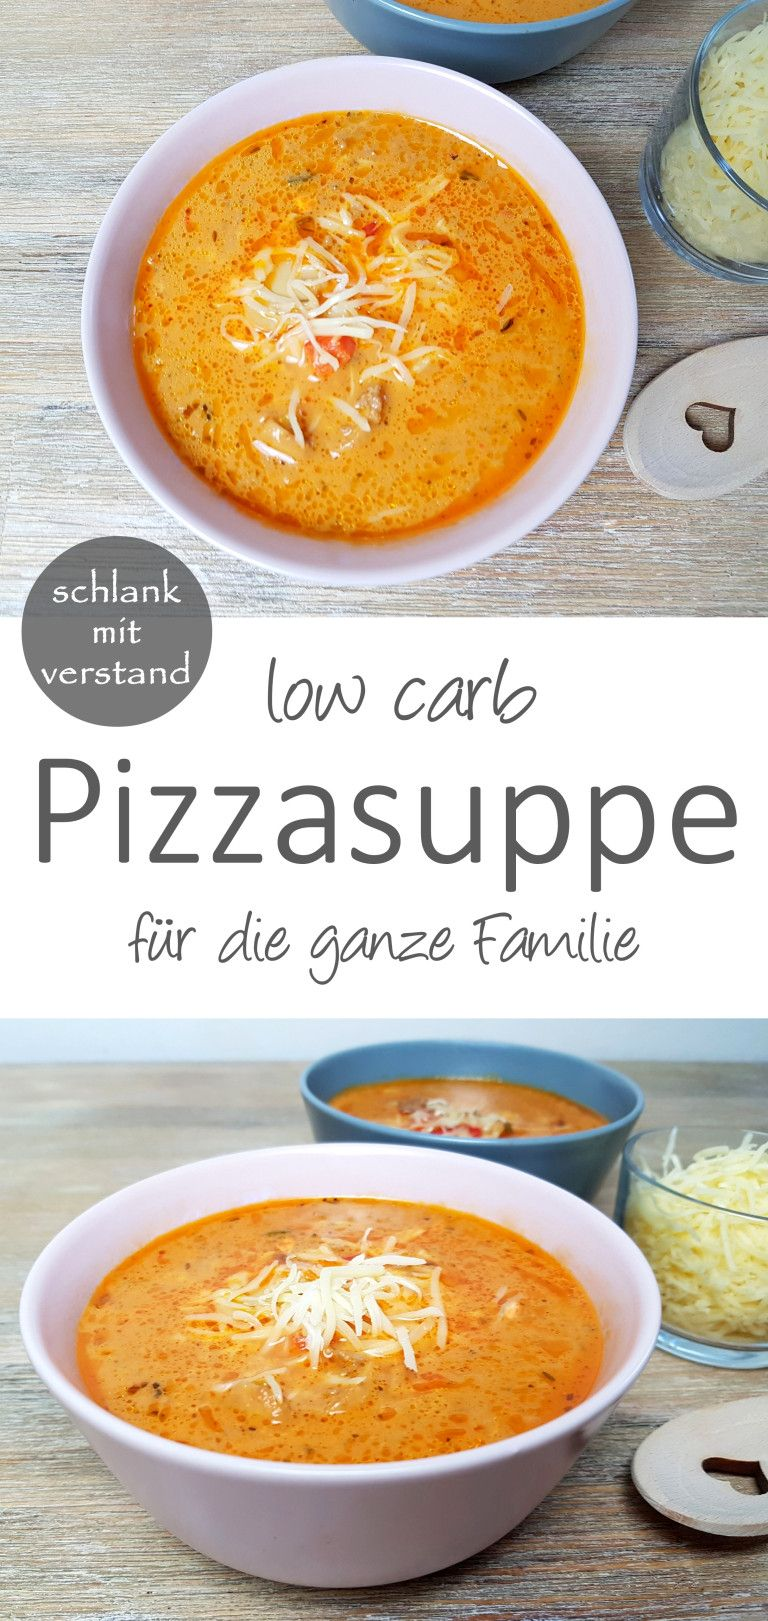 Pizzasuppe low carb #schnellerezeptemittagessen